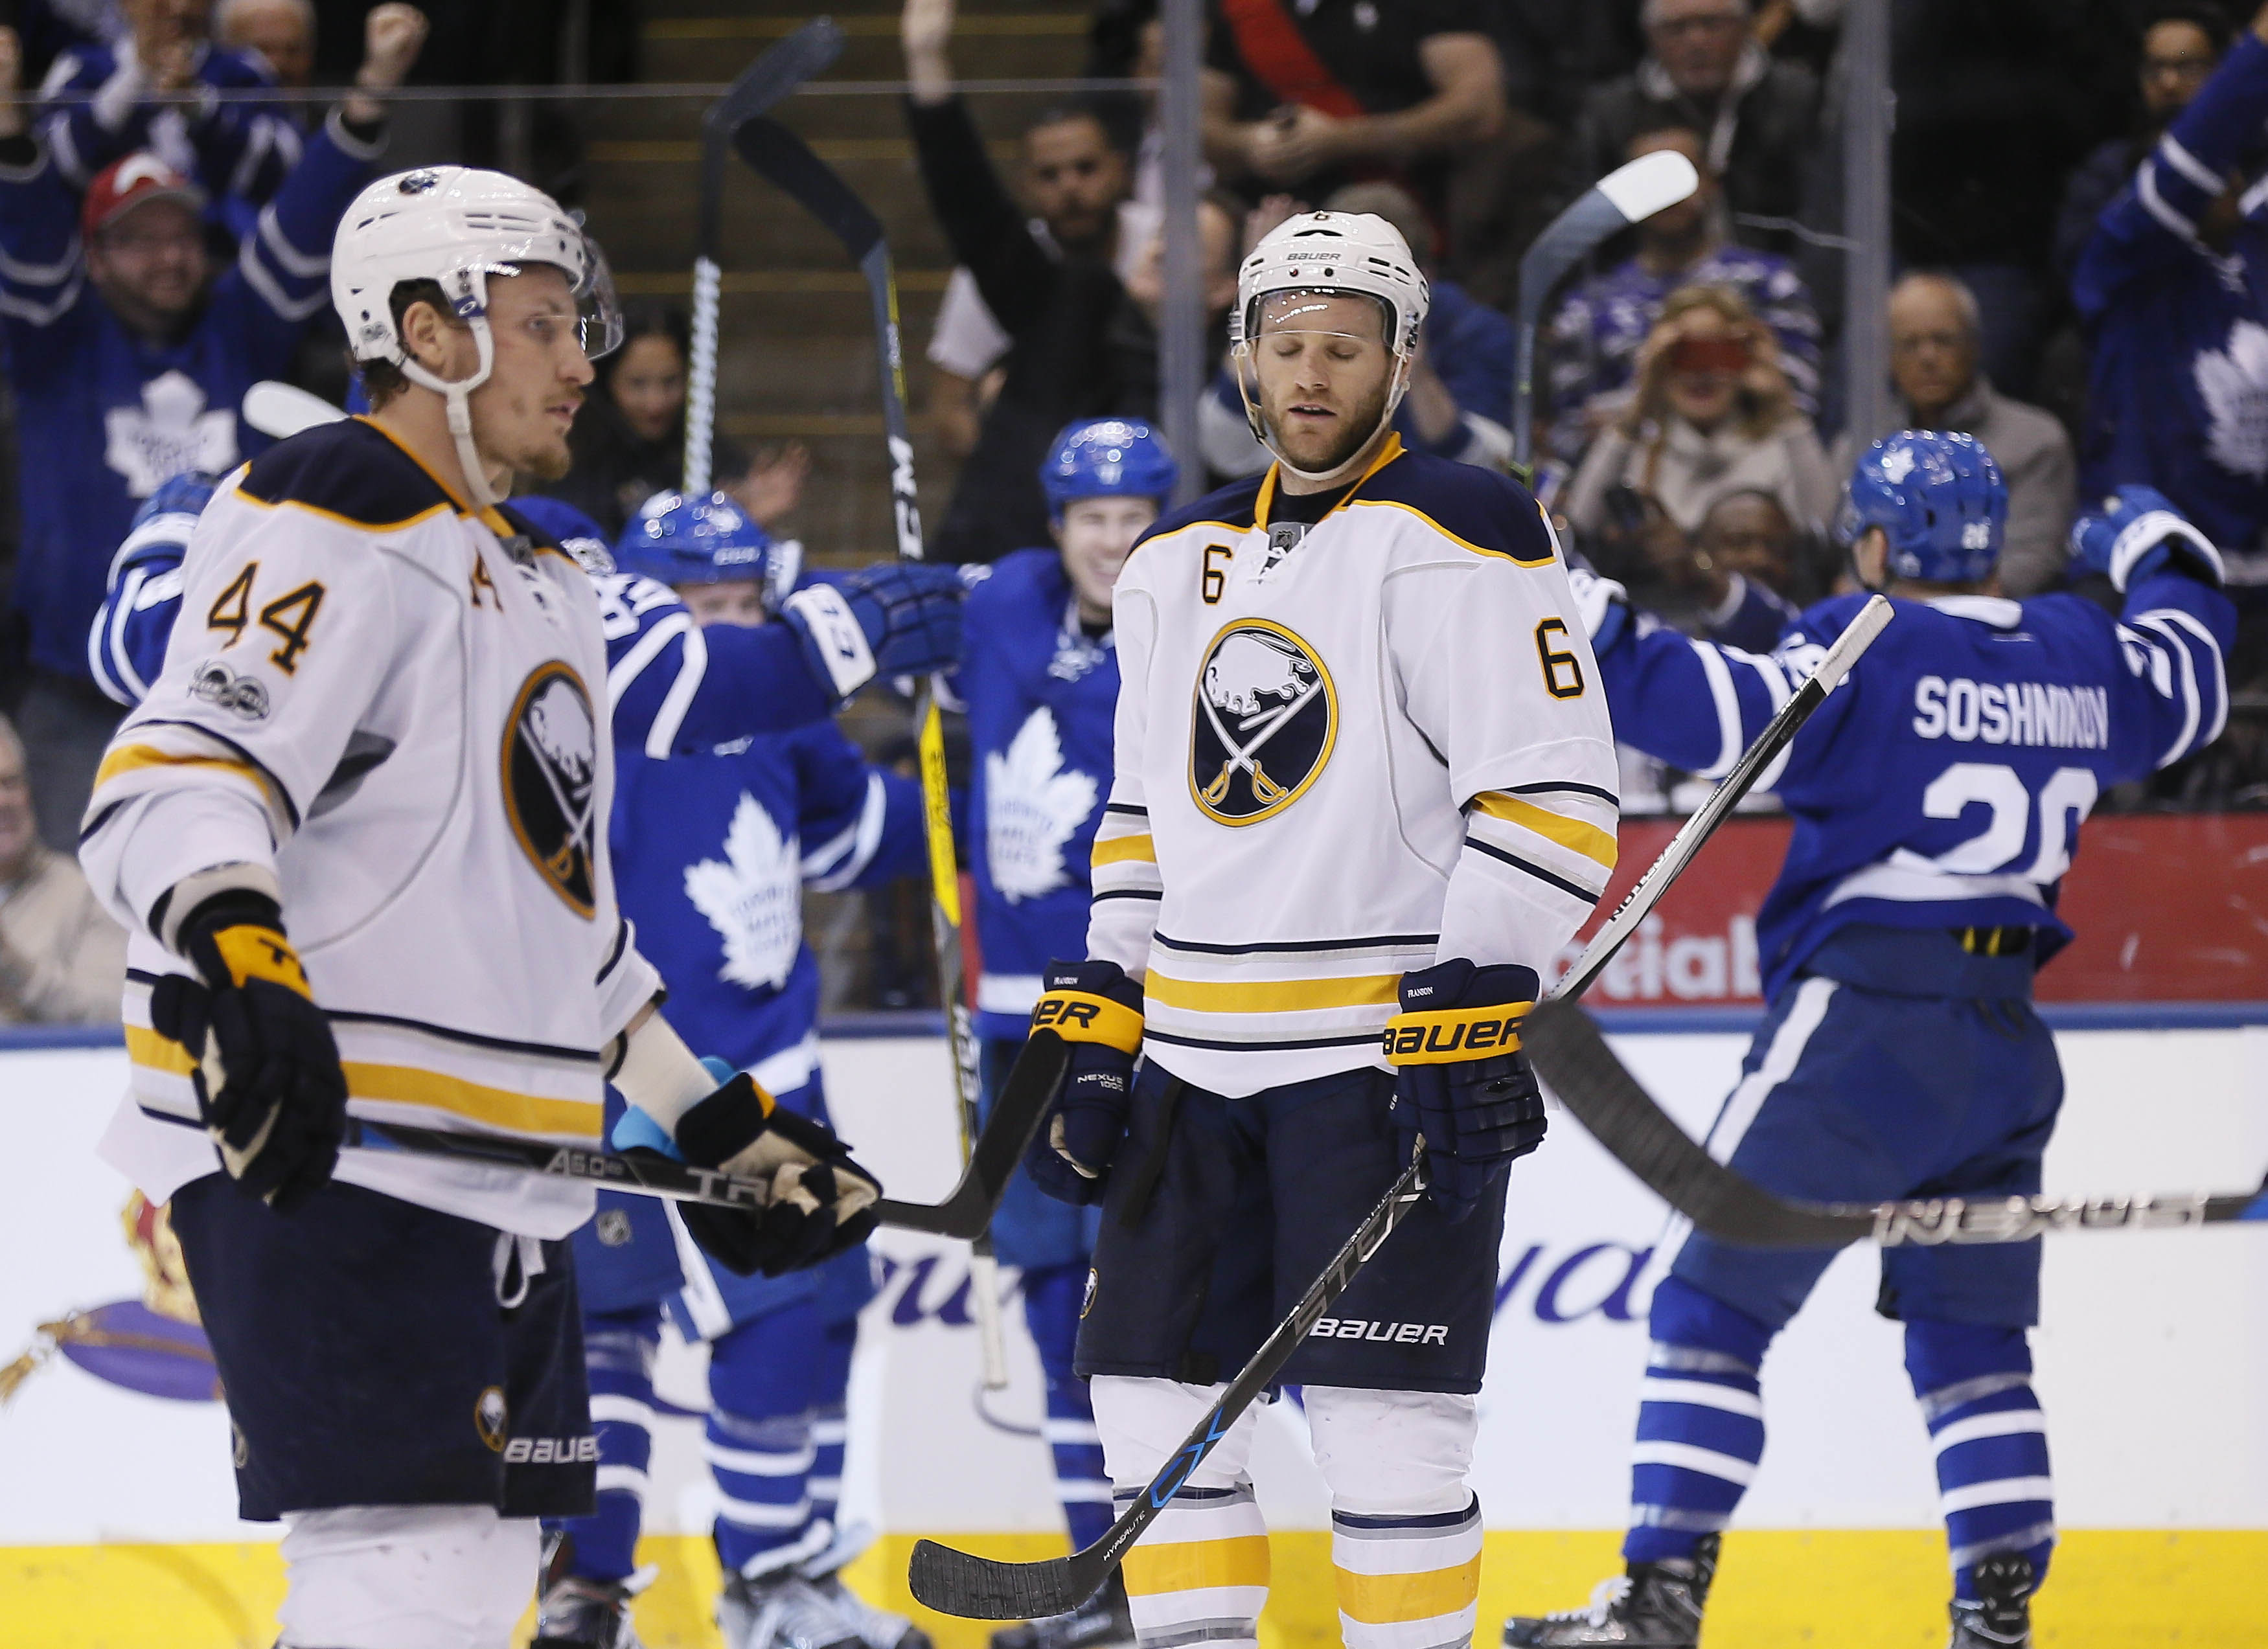 Nic Deslauriers and Cody Franson (6) react after Matt Martin's goal in the second period got the Leafs even.  (John E. Sokolowski-USA TODAY Sports).